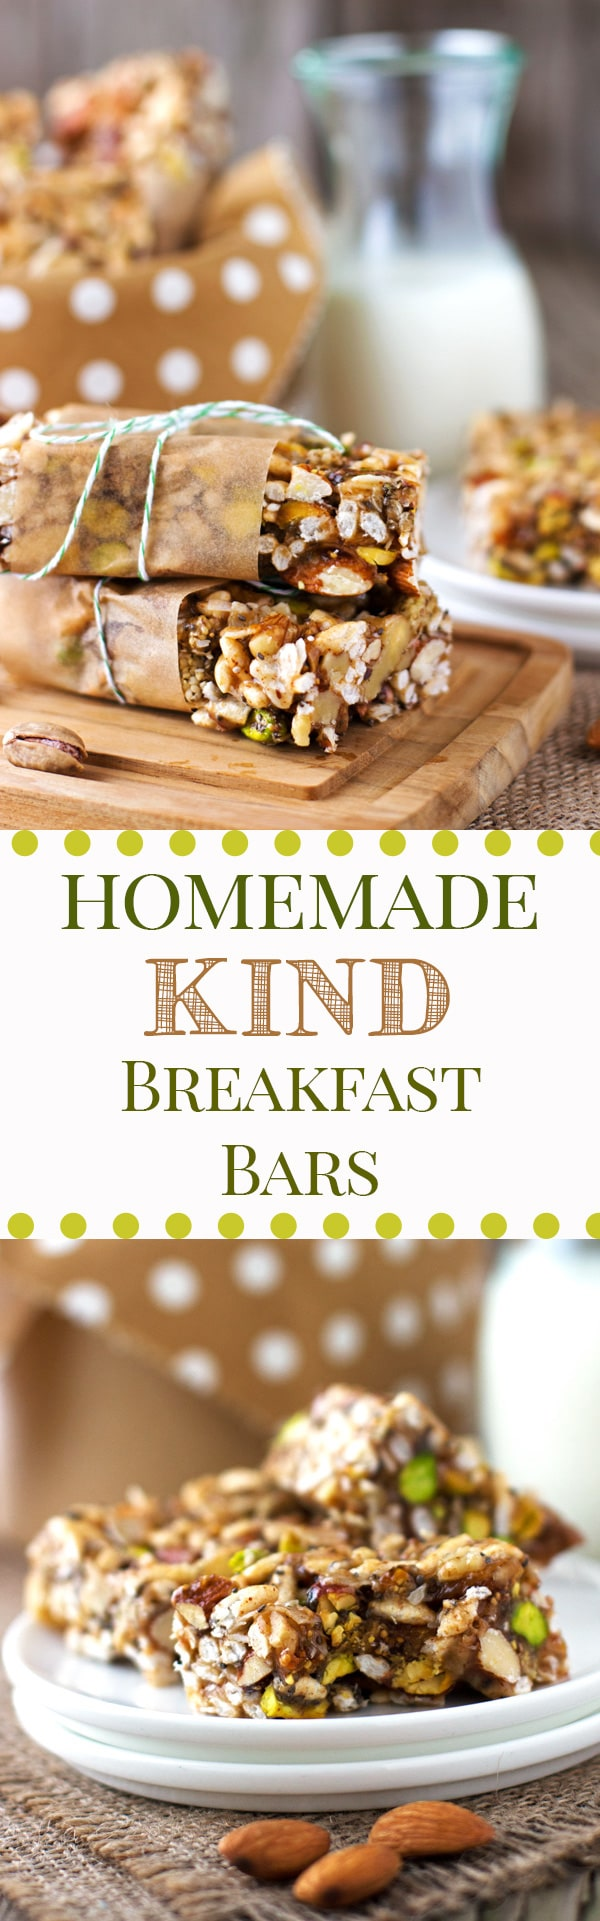 """Homemade """"Kind"""" Breakfast Bars : Have you ever wanted to make your own version of """"Kind"""" bar in your very own kitchen? This post gives you the formula to create VEGAN Homemade """"Kind"""" Breakfast Bars."""